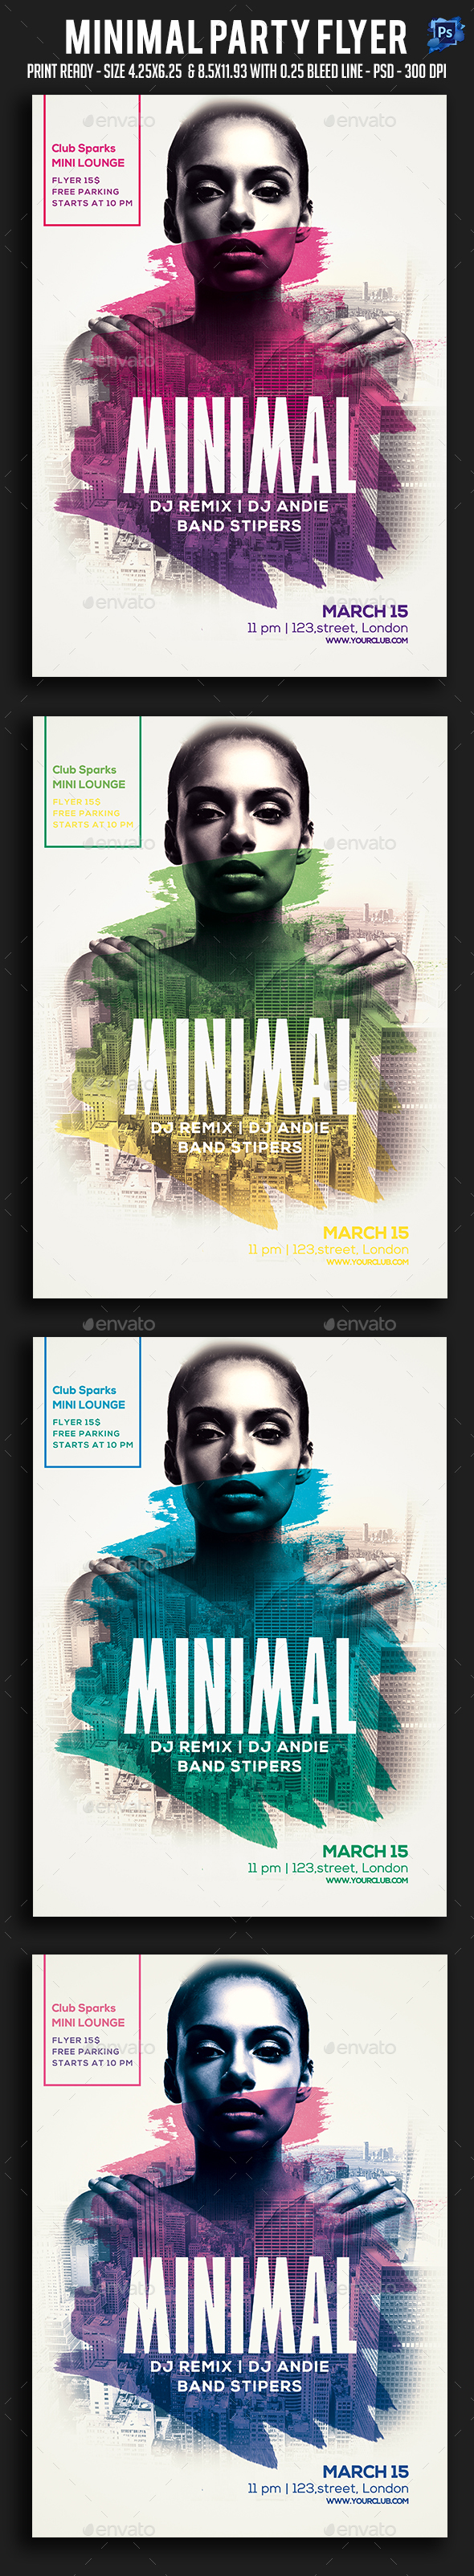 Minimal Party Flyer - Clubs & Parties Events